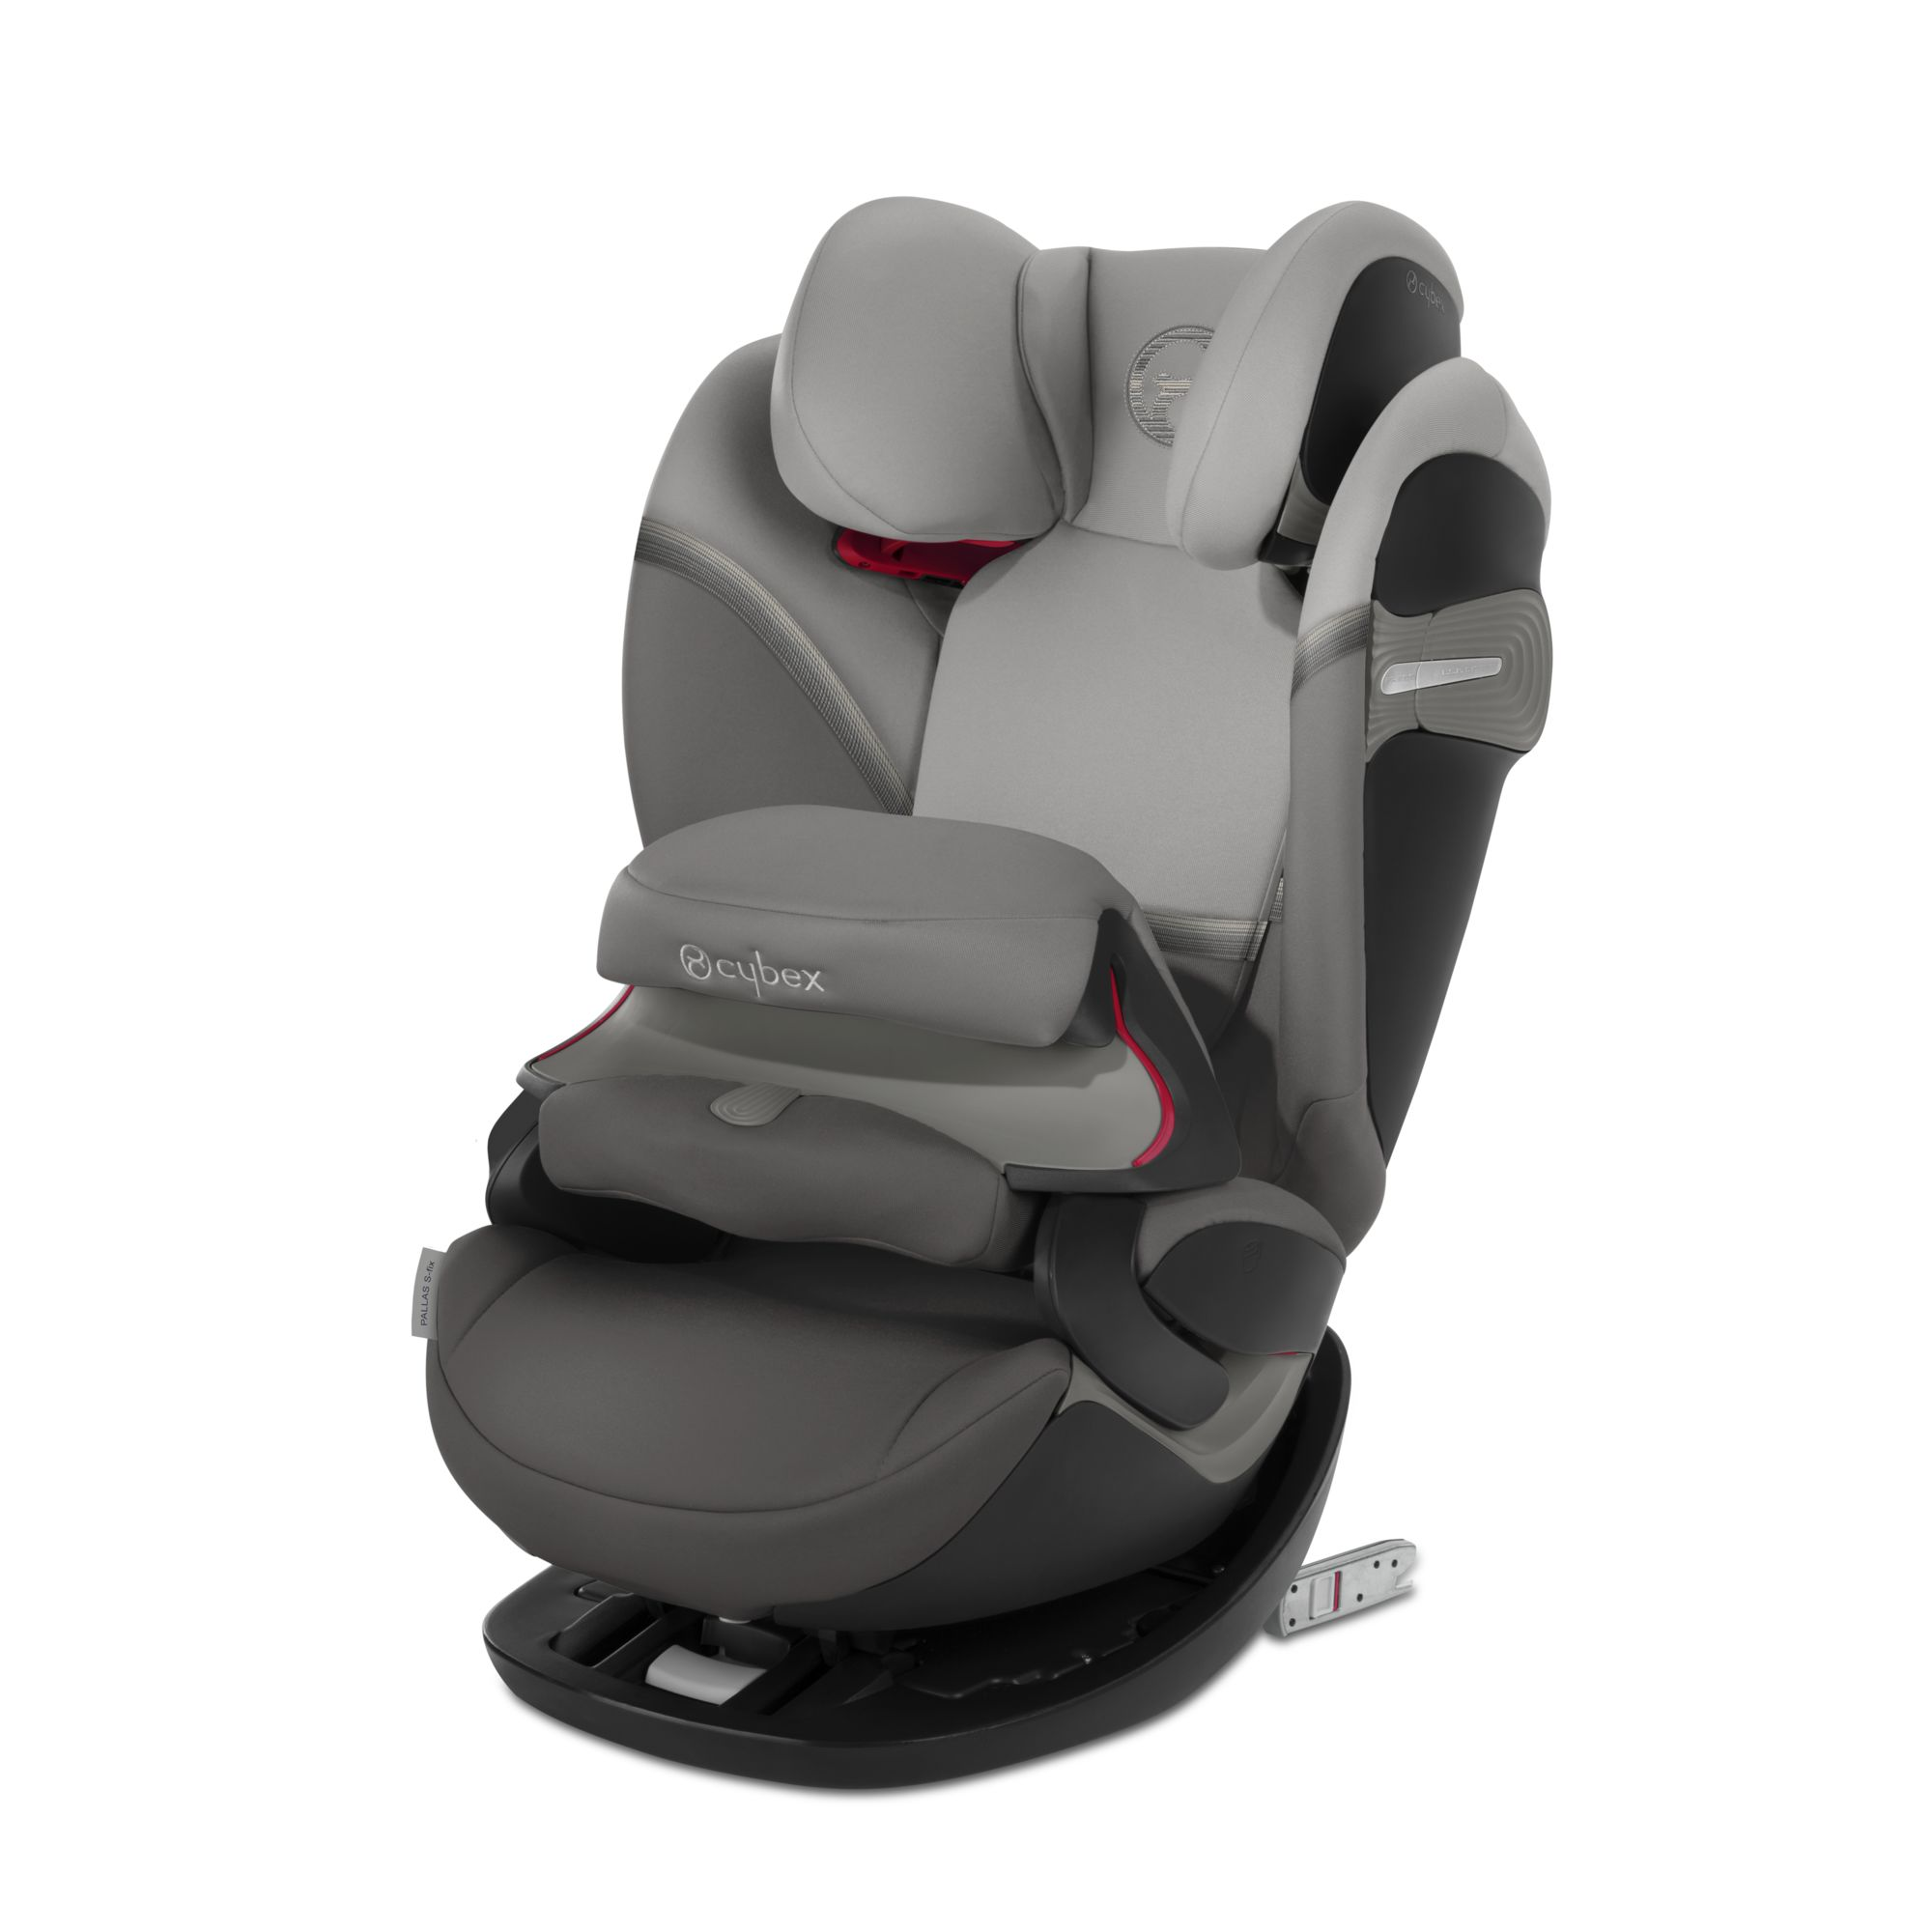 CYBEX PALLAS S-FIX SOHO GREY 2021